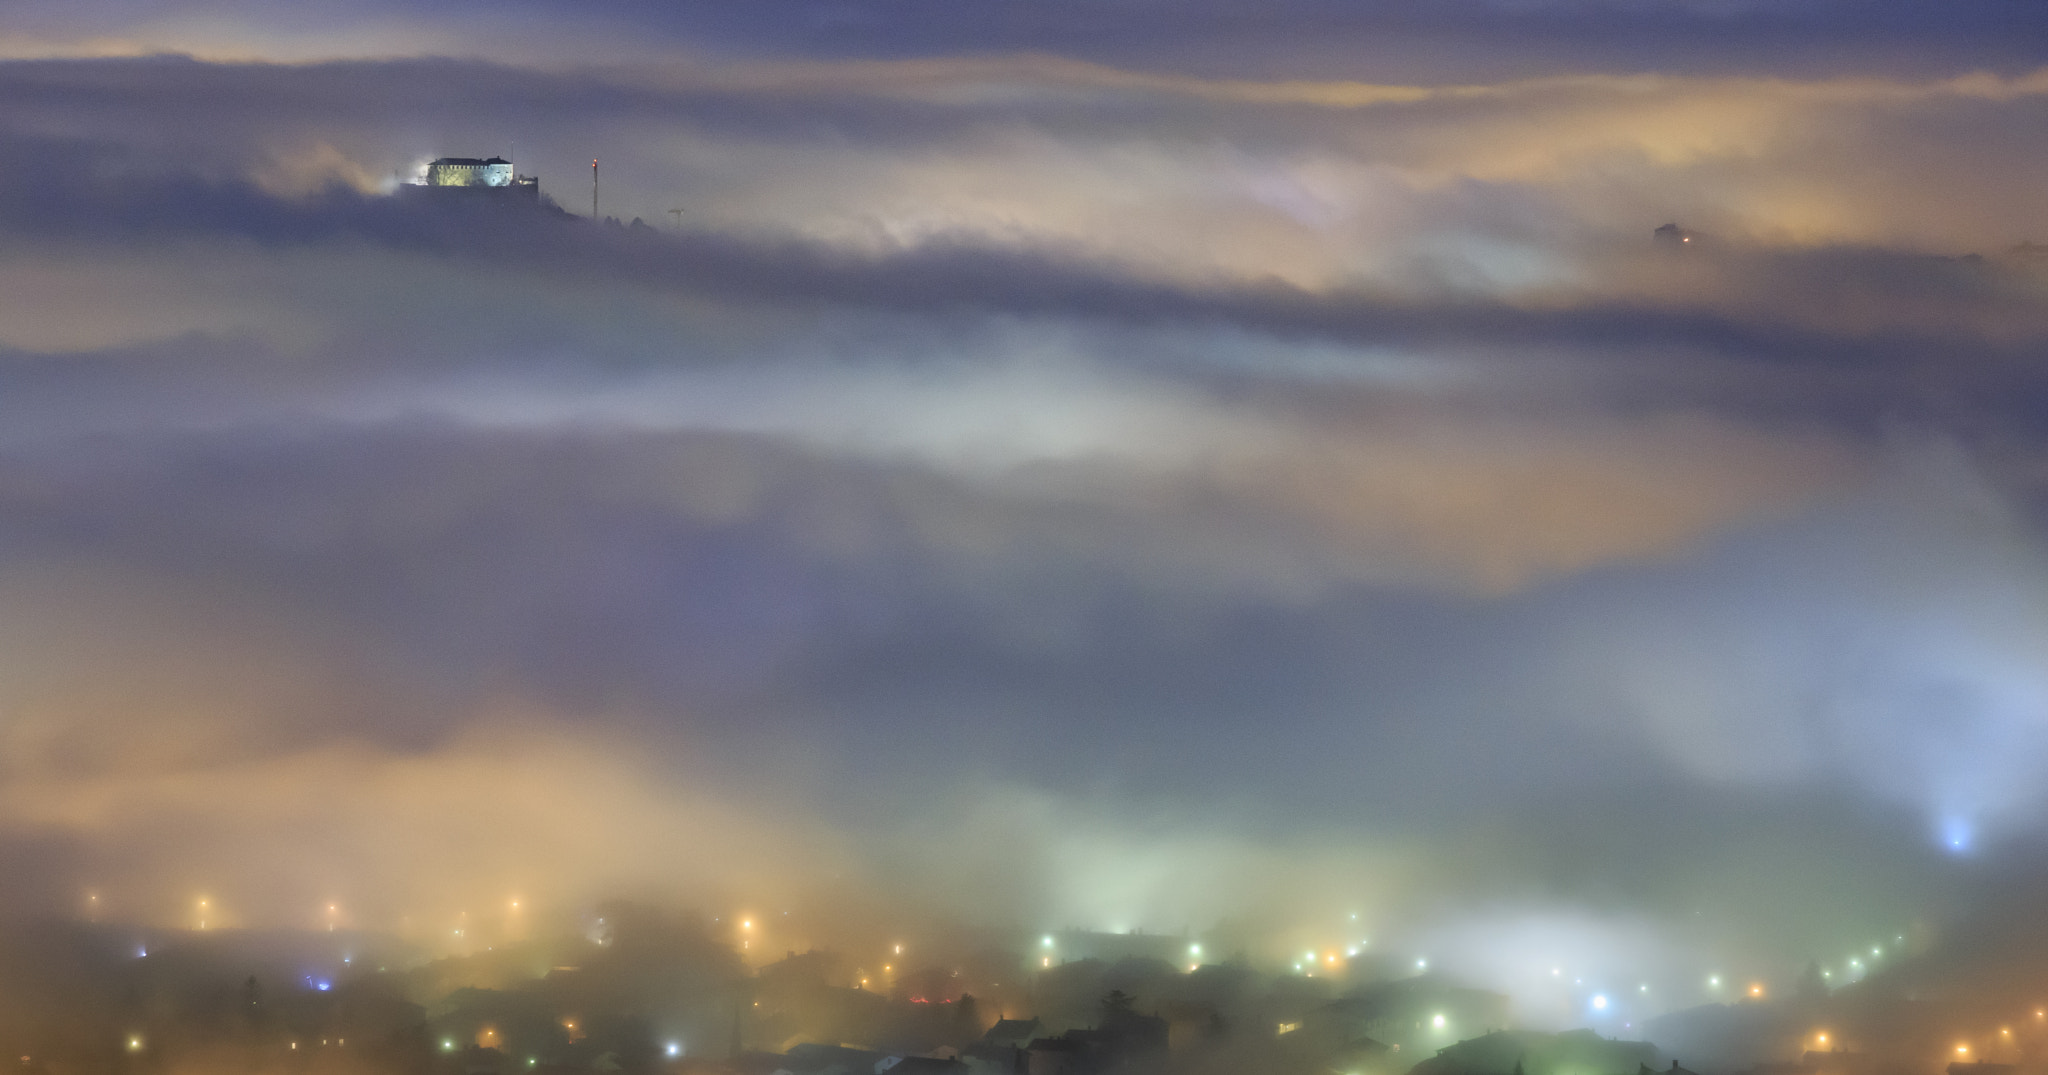 Photograph Dream Town by Jure Batagelj on 500px